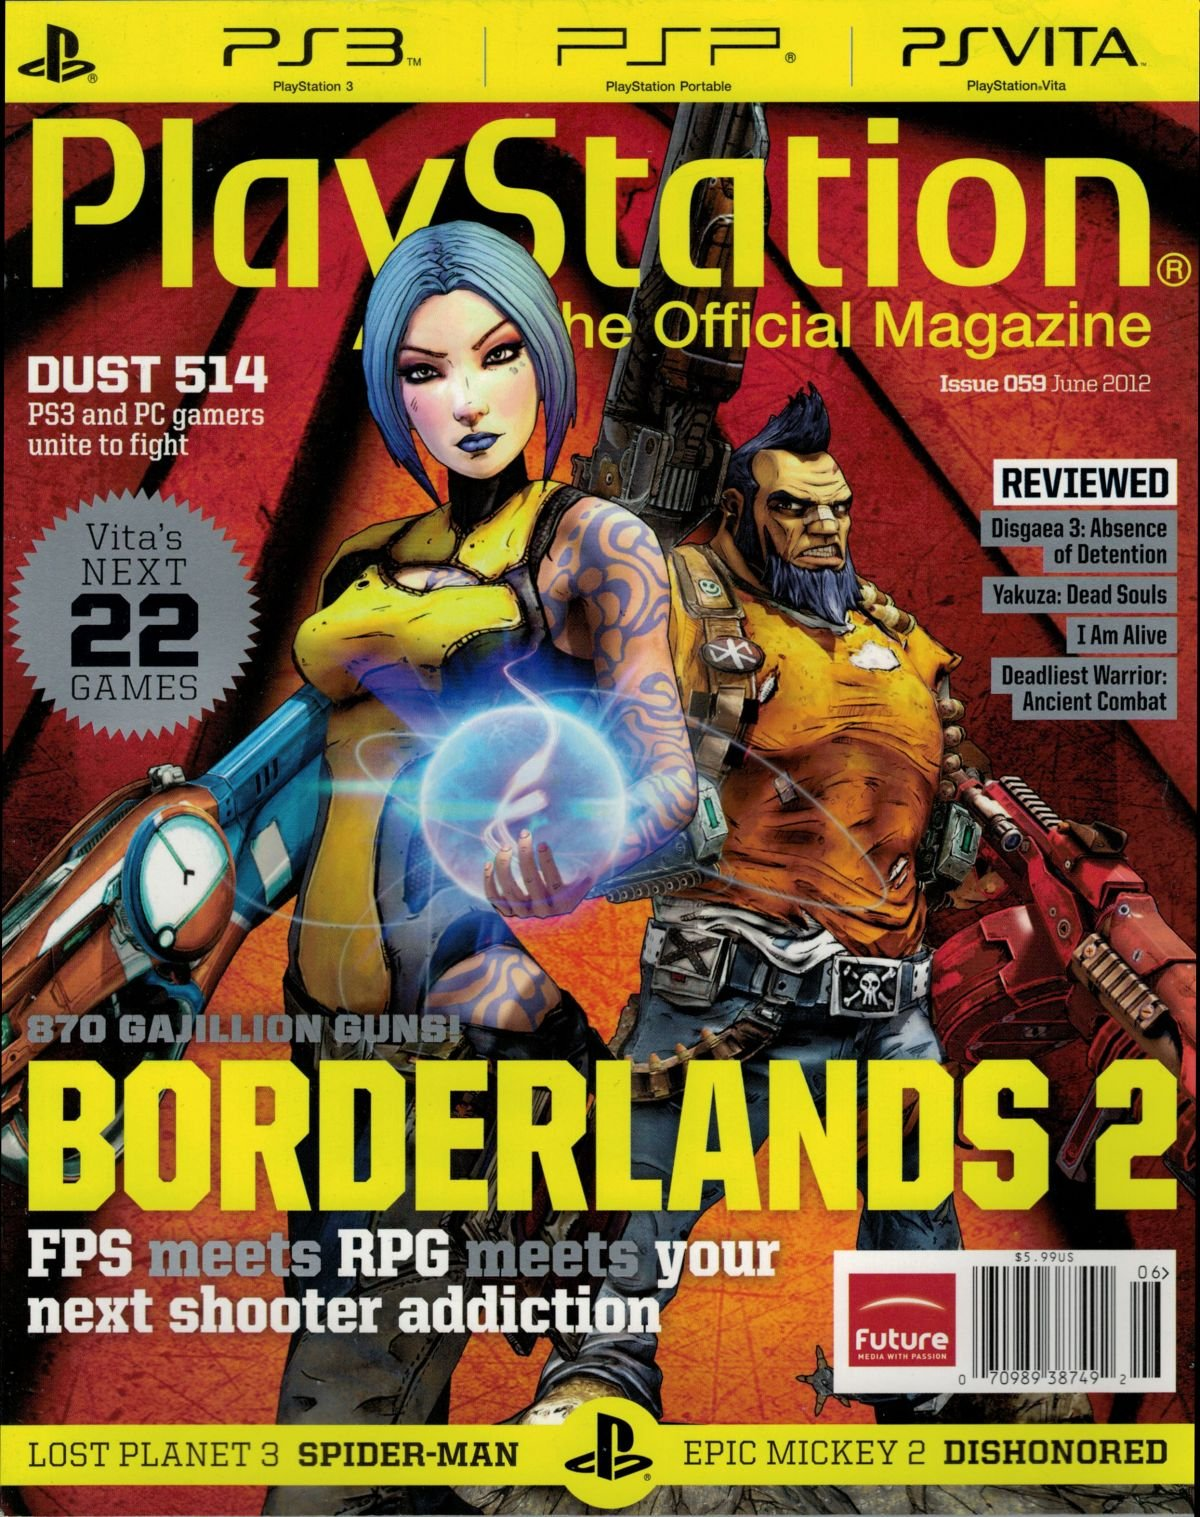 PlayStation The Official Magazine (USA) Issue 059 June 2012